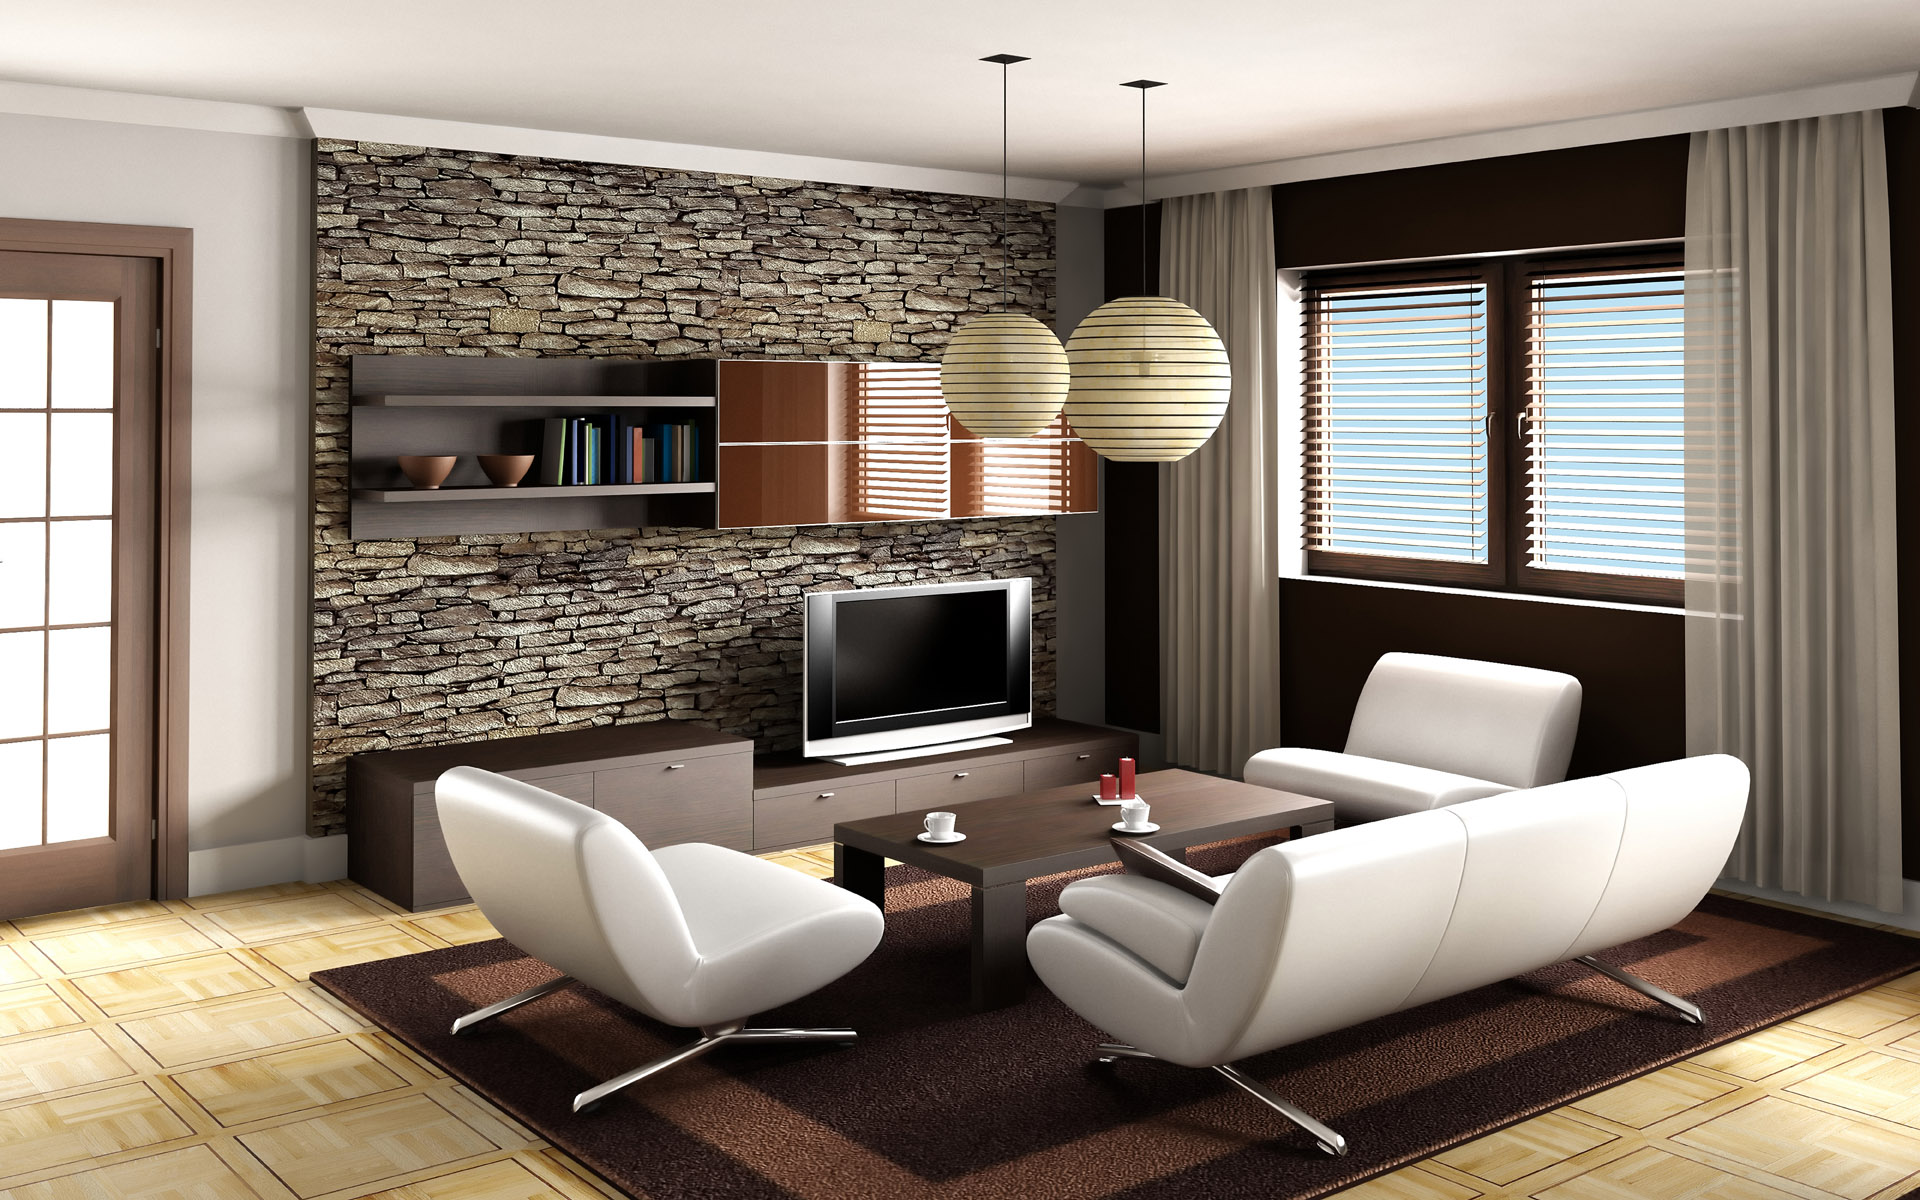 living room decoration ideas good looking pictures of living room designs 3 remodelling your design YXJSFLF